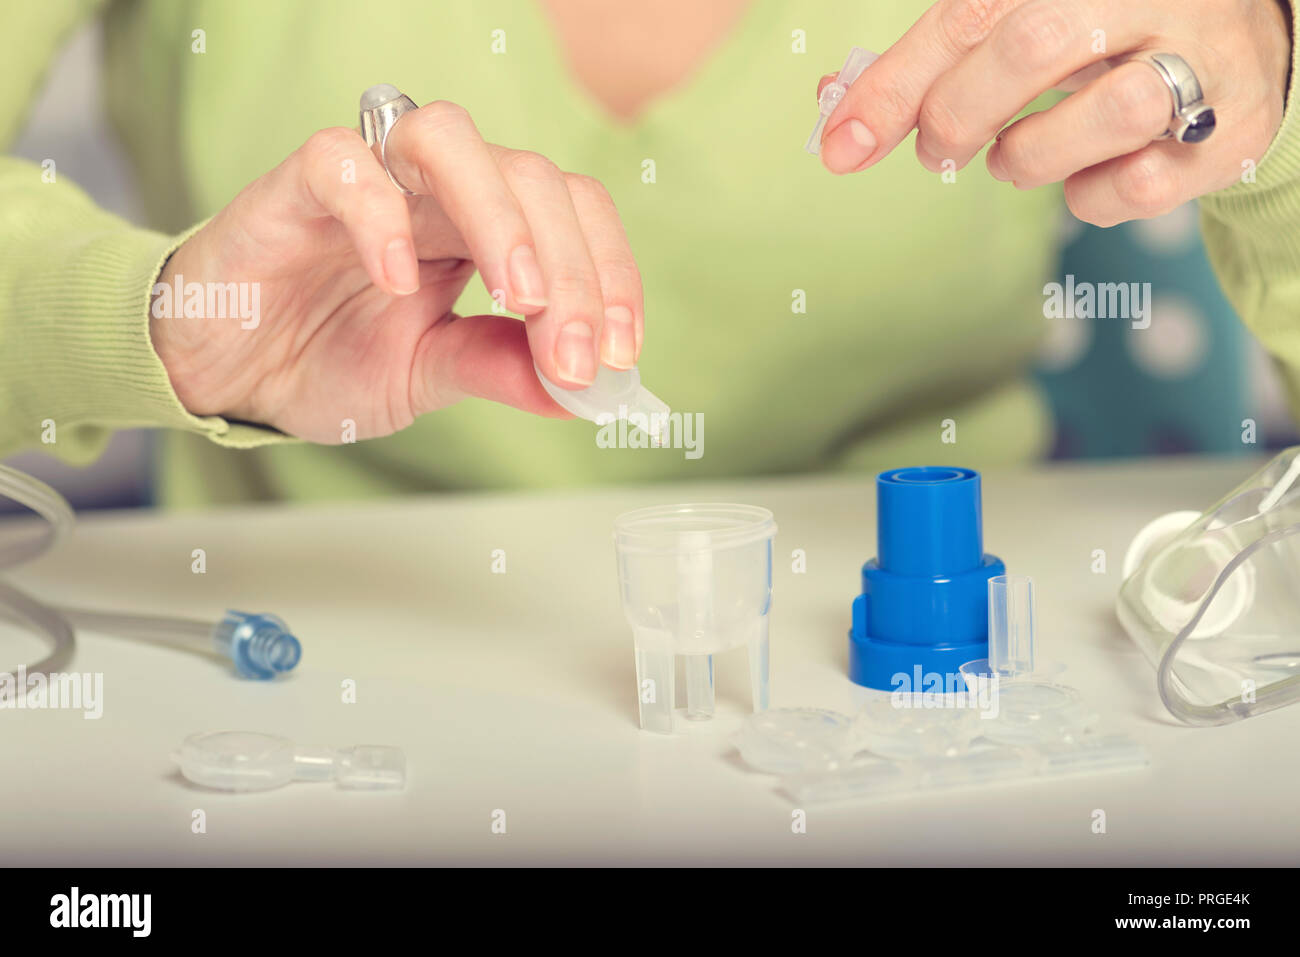 Female hands put drug in a nebuliser container. Selective focus - Stock Image